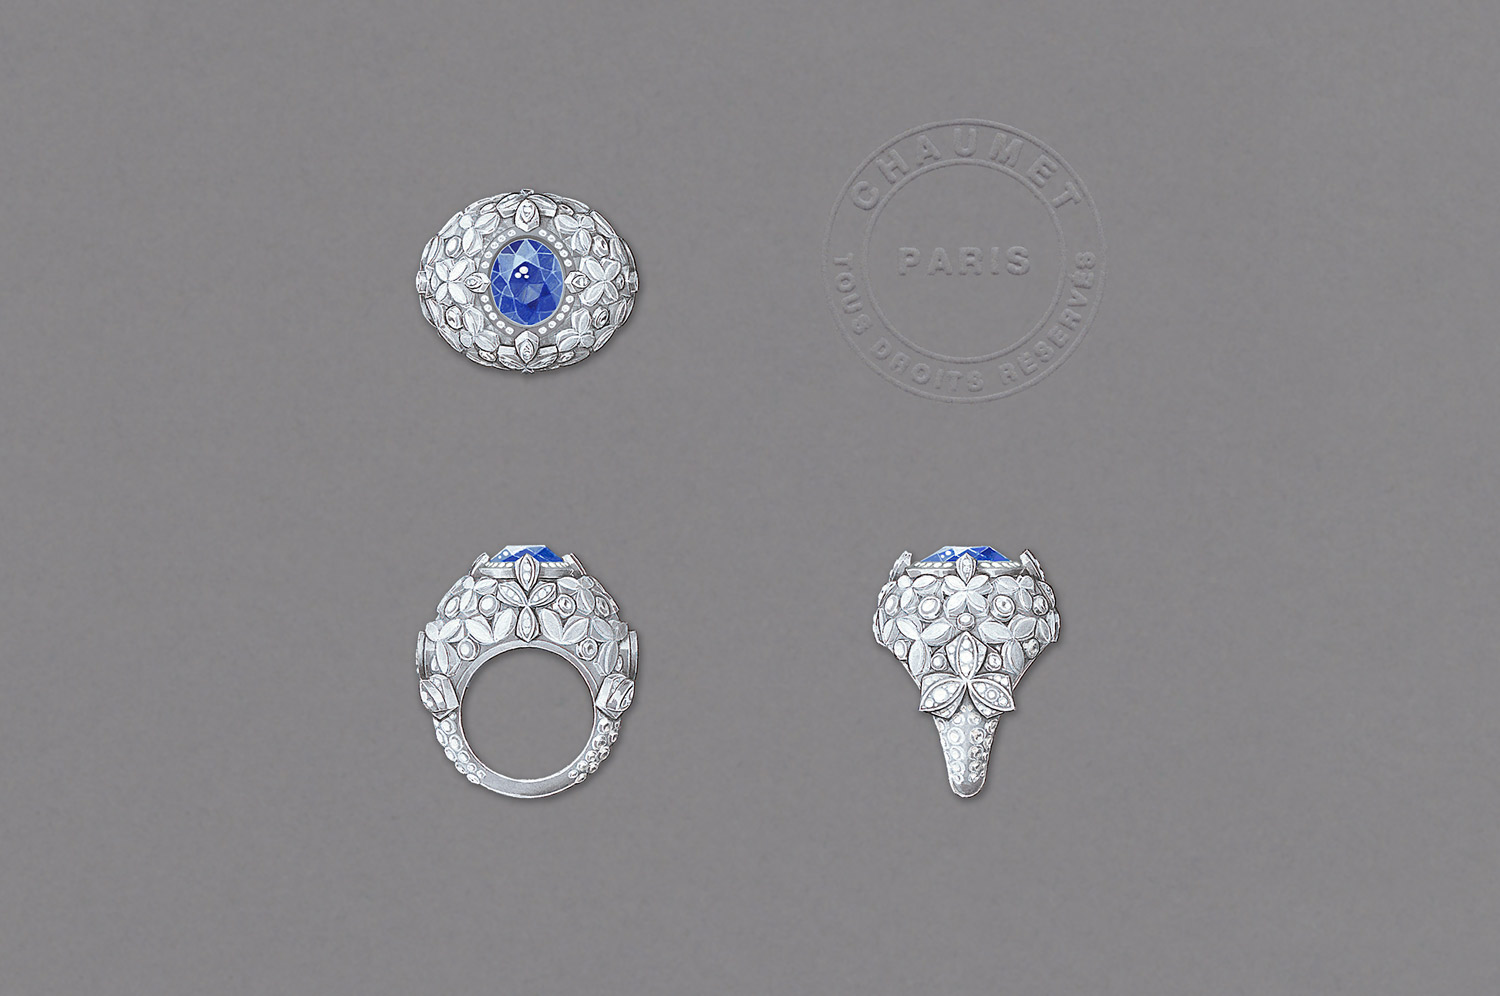 Chaumet 'Promenades Imperiales' collection ring in 18k white gold, set with a 5.08 ct Ceylon sapphire and diamonds